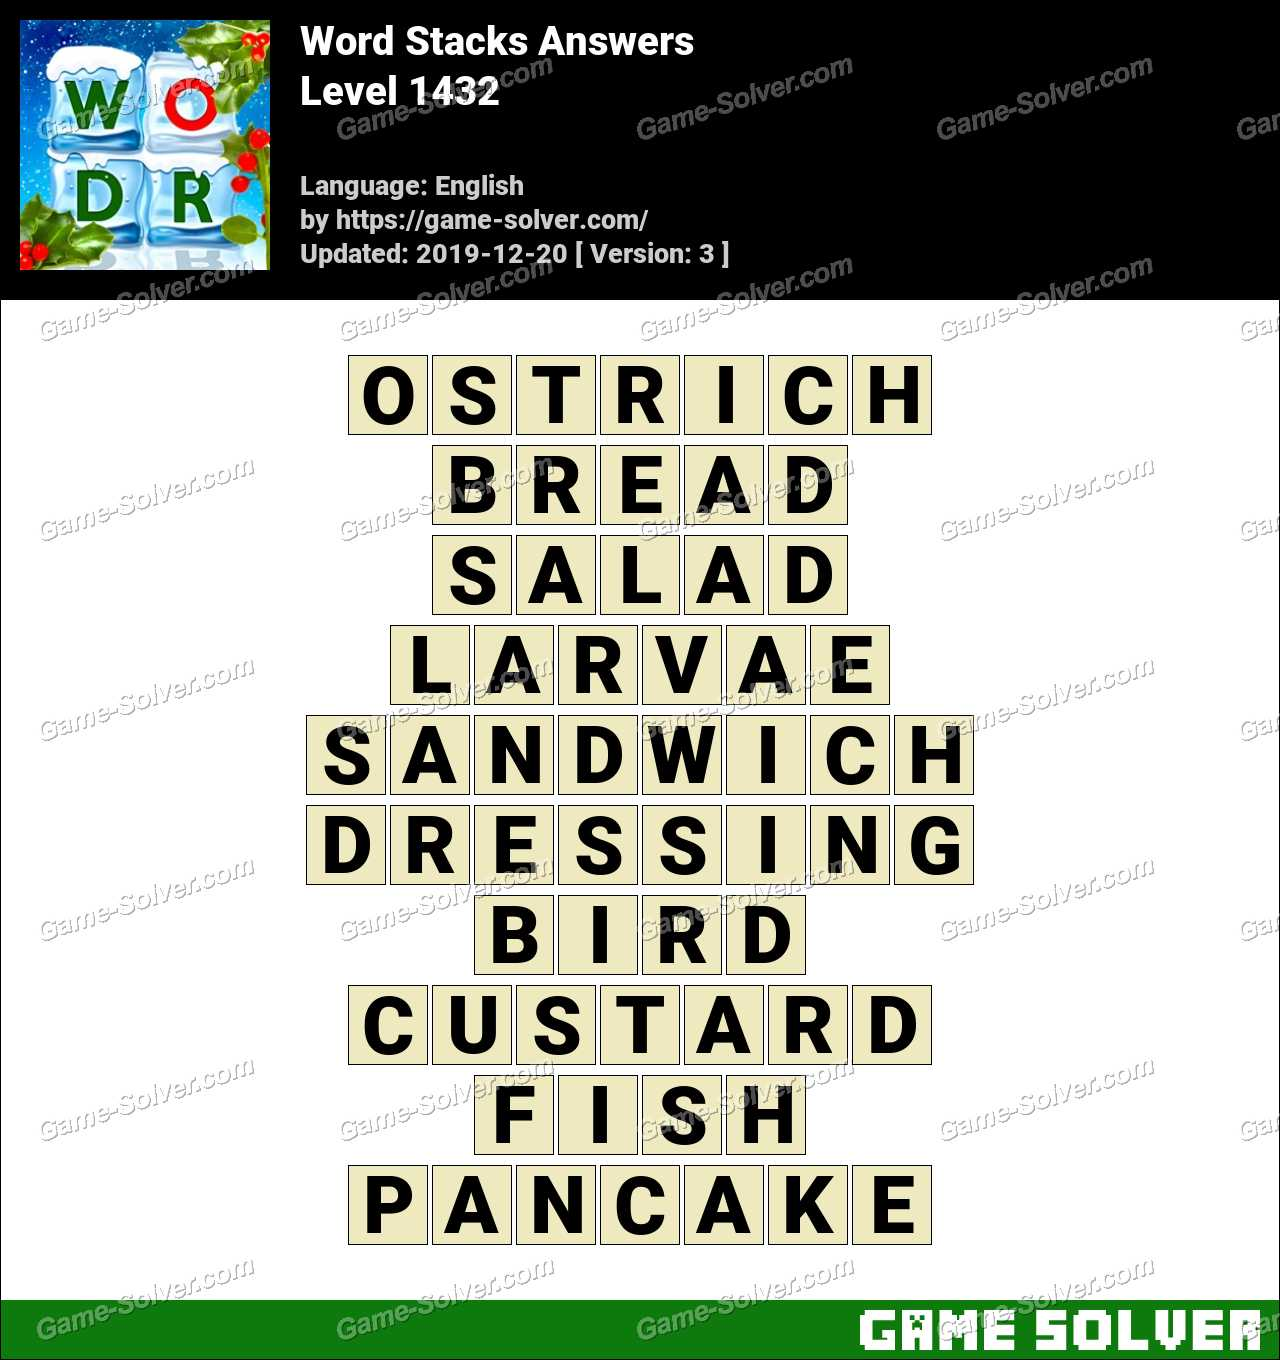 Word Stacks Level 1432 Answers